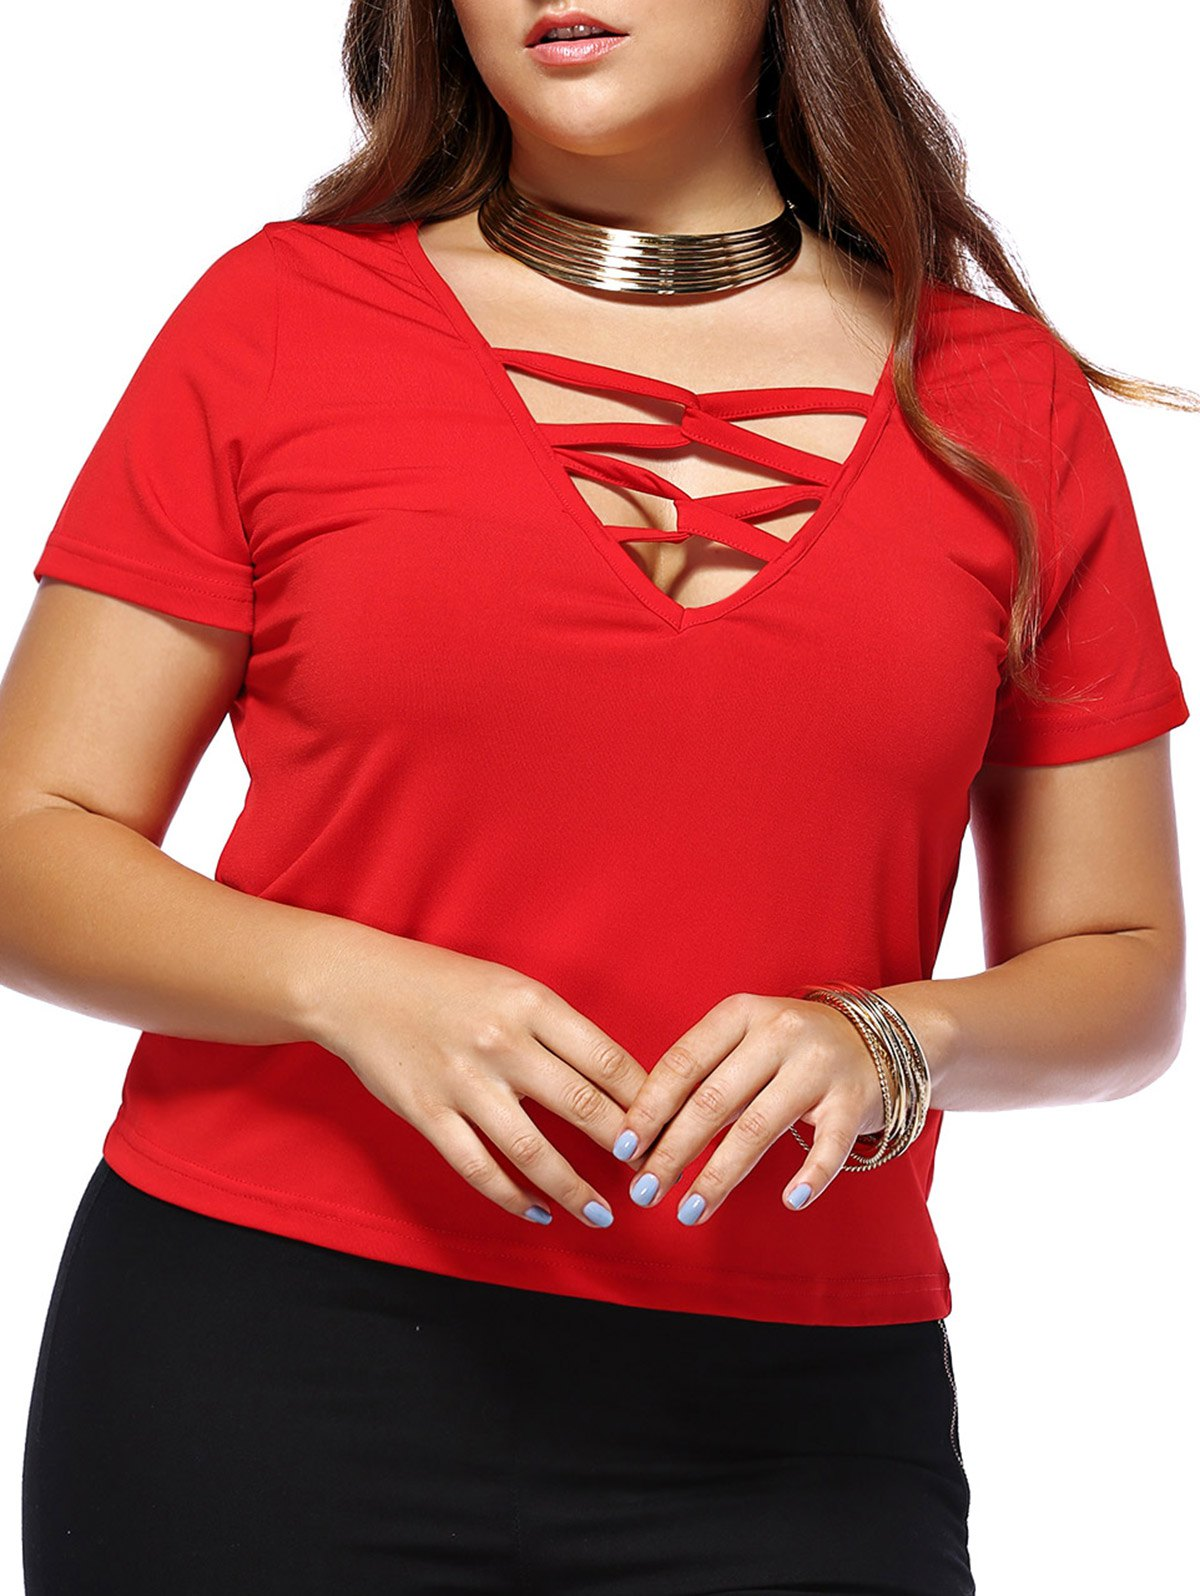 Alluring Plus Size Red Criss Cross Plunging Neck Women's T-Shirt - RED 5XL